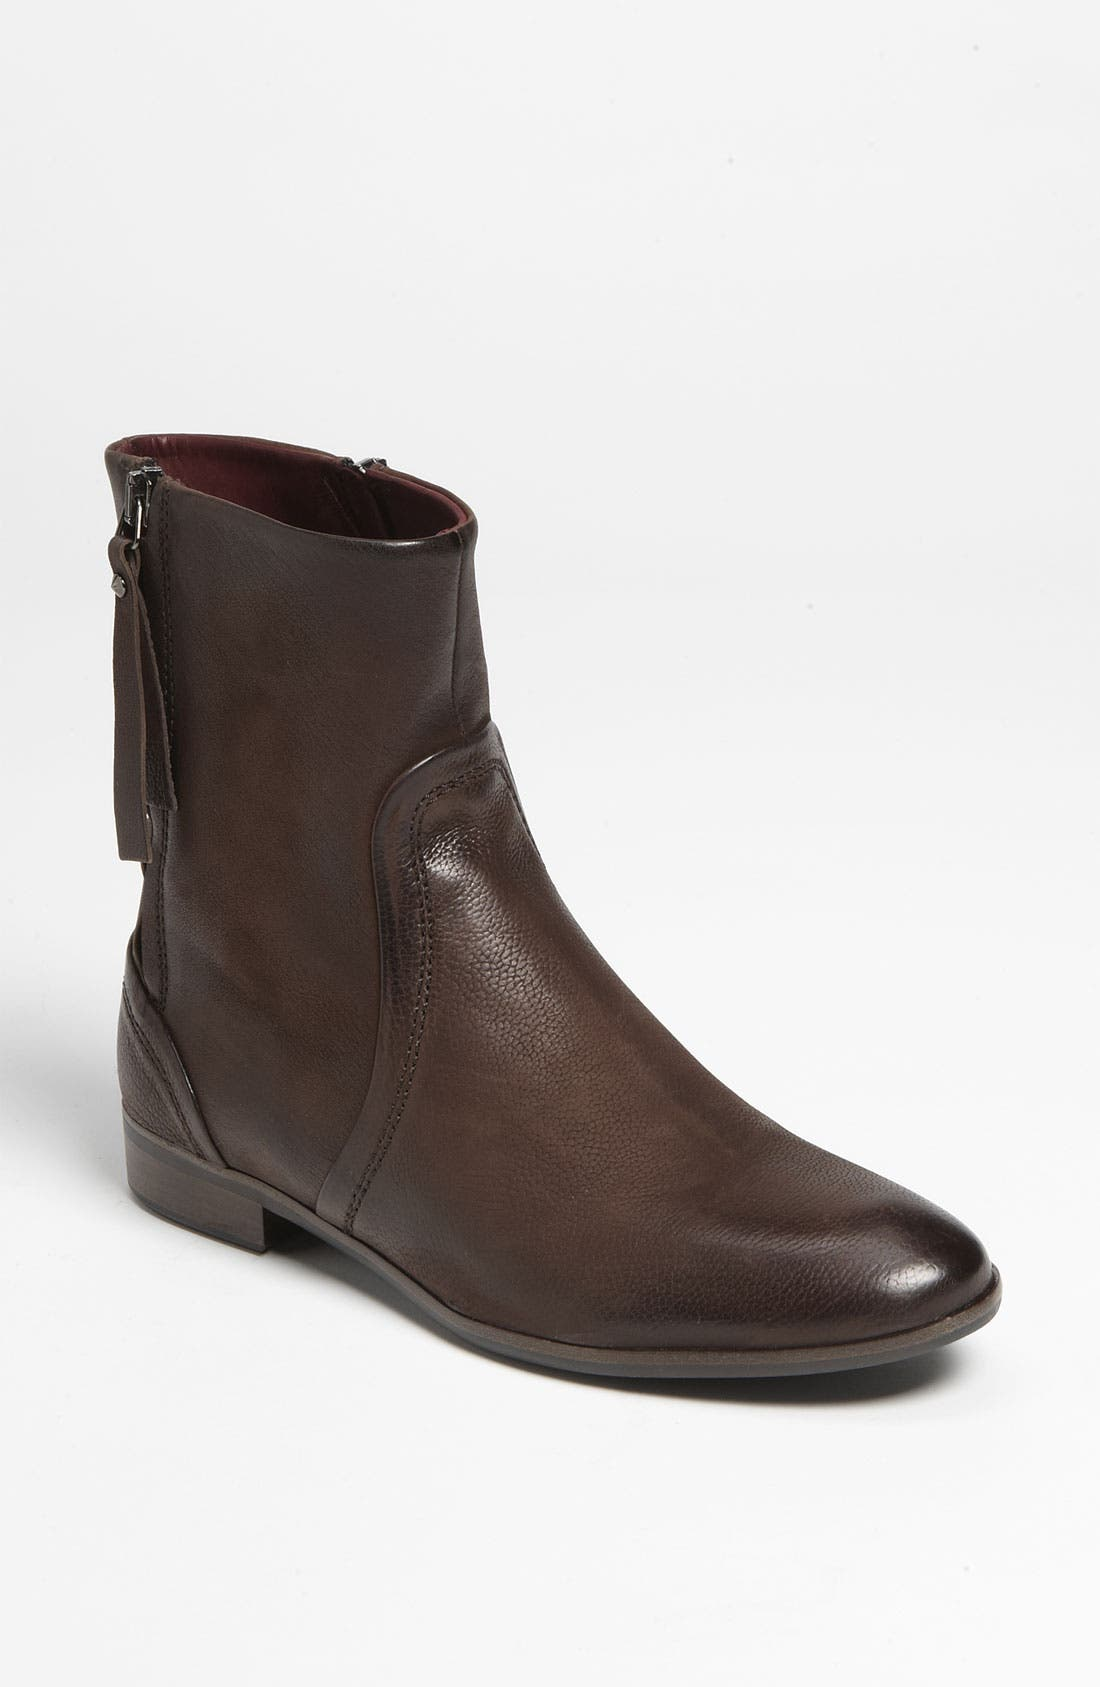 Alternate Image 1 Selected - ECCO 'Norwalk' Boot